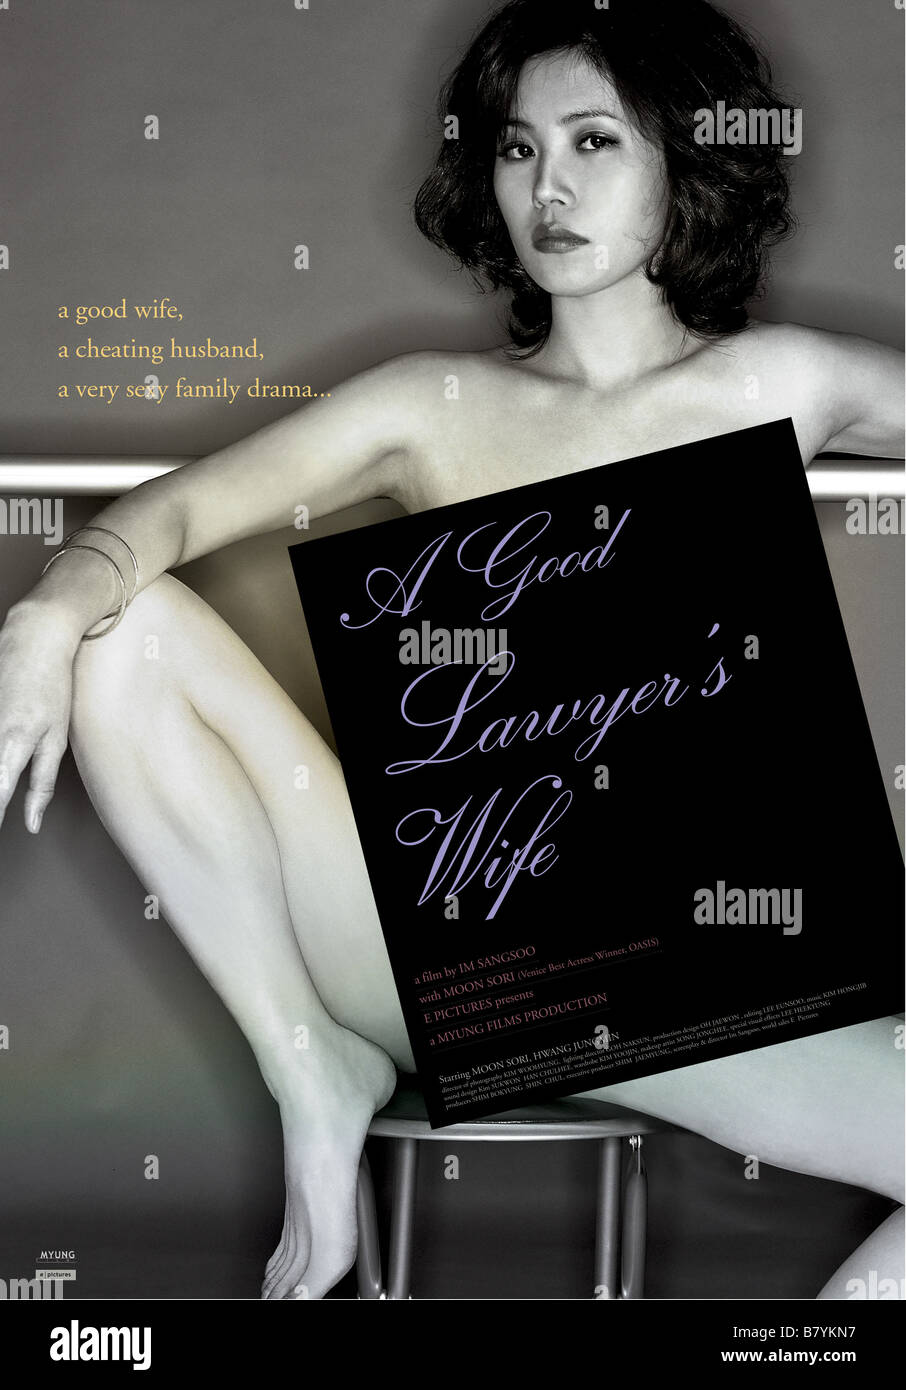 Baramnan gajok  A good lawyer's wife Year: 2003 - South Korea Director: Im Sang-Soo Moon So-ri Movie poster - Stock Image